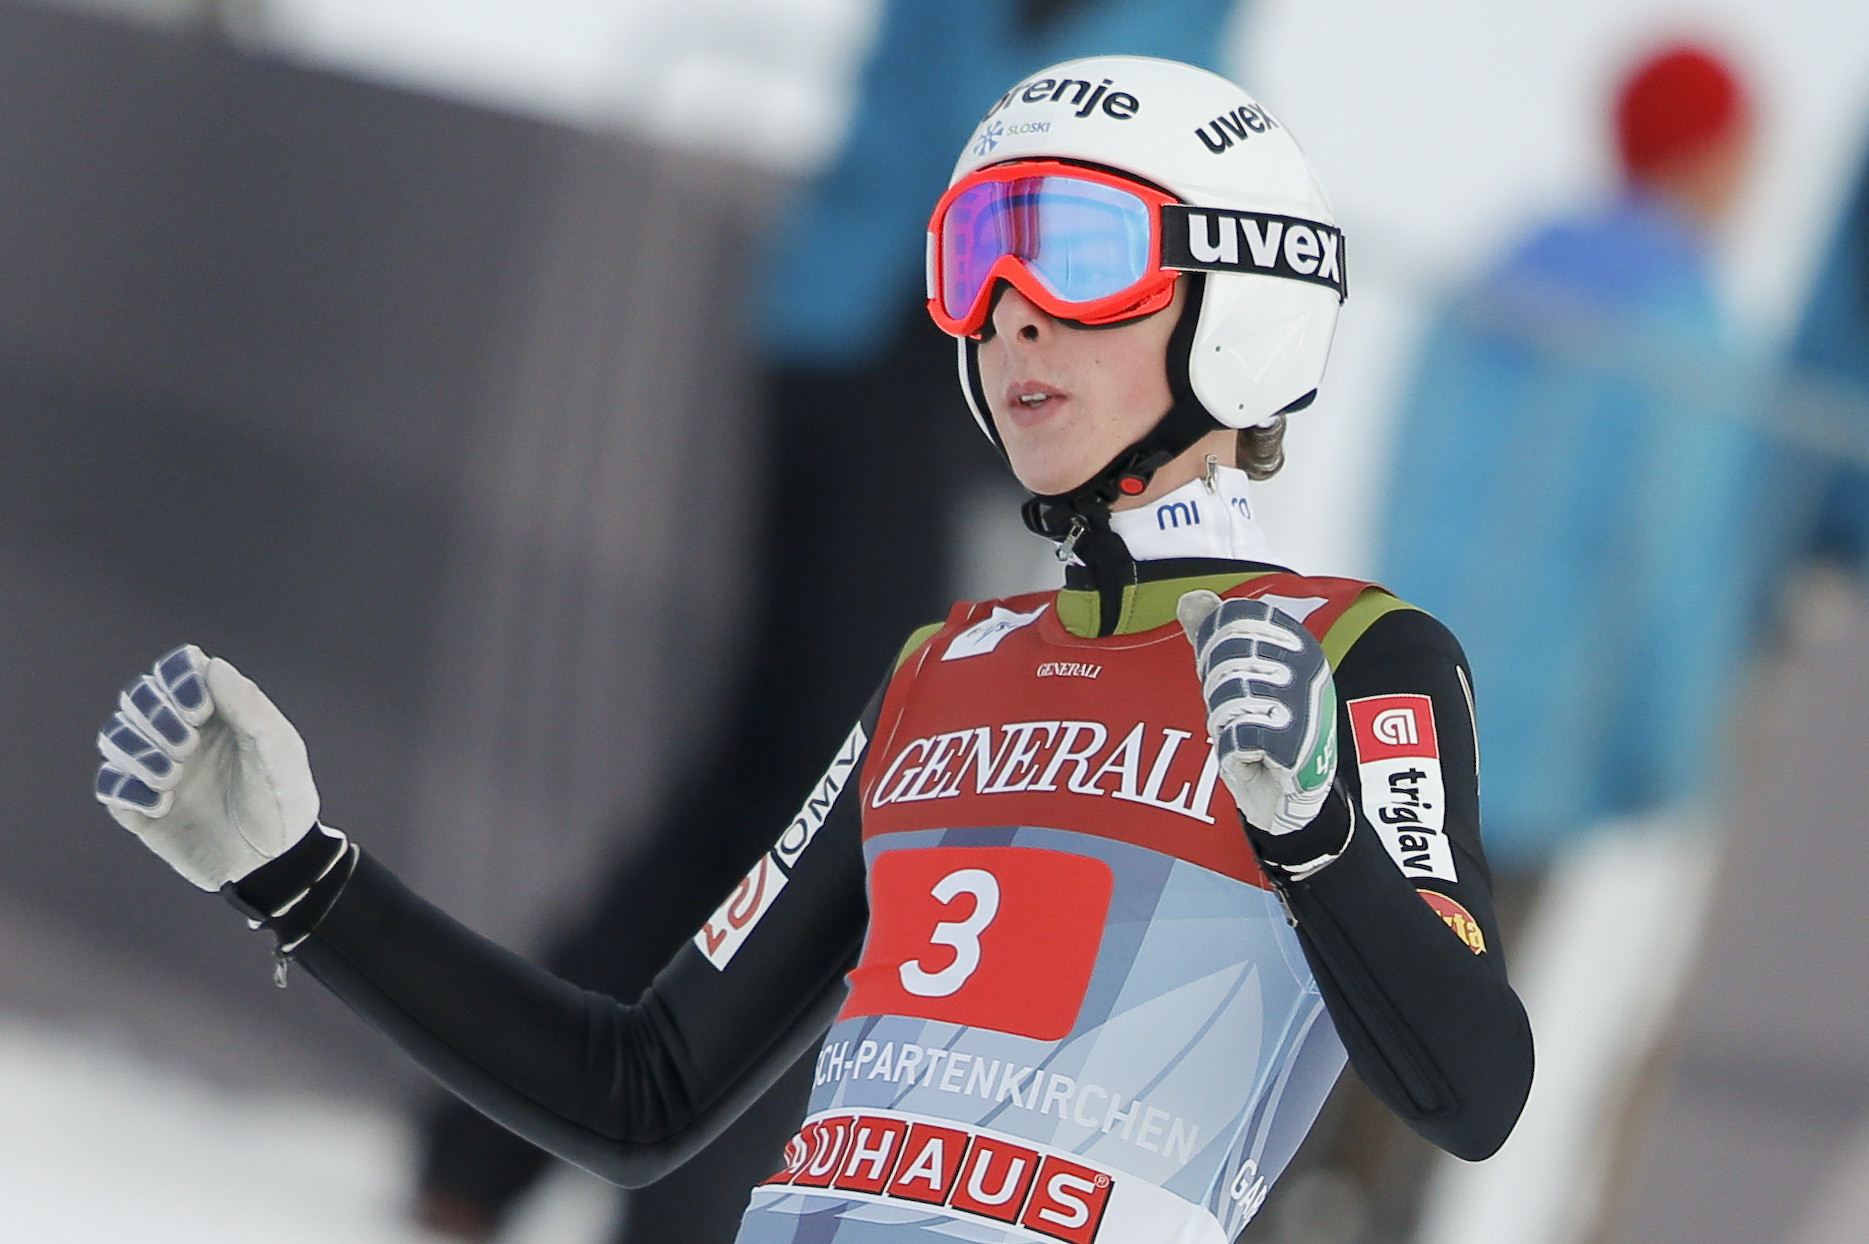 Former junior world champion Hvala retires from ski jumping